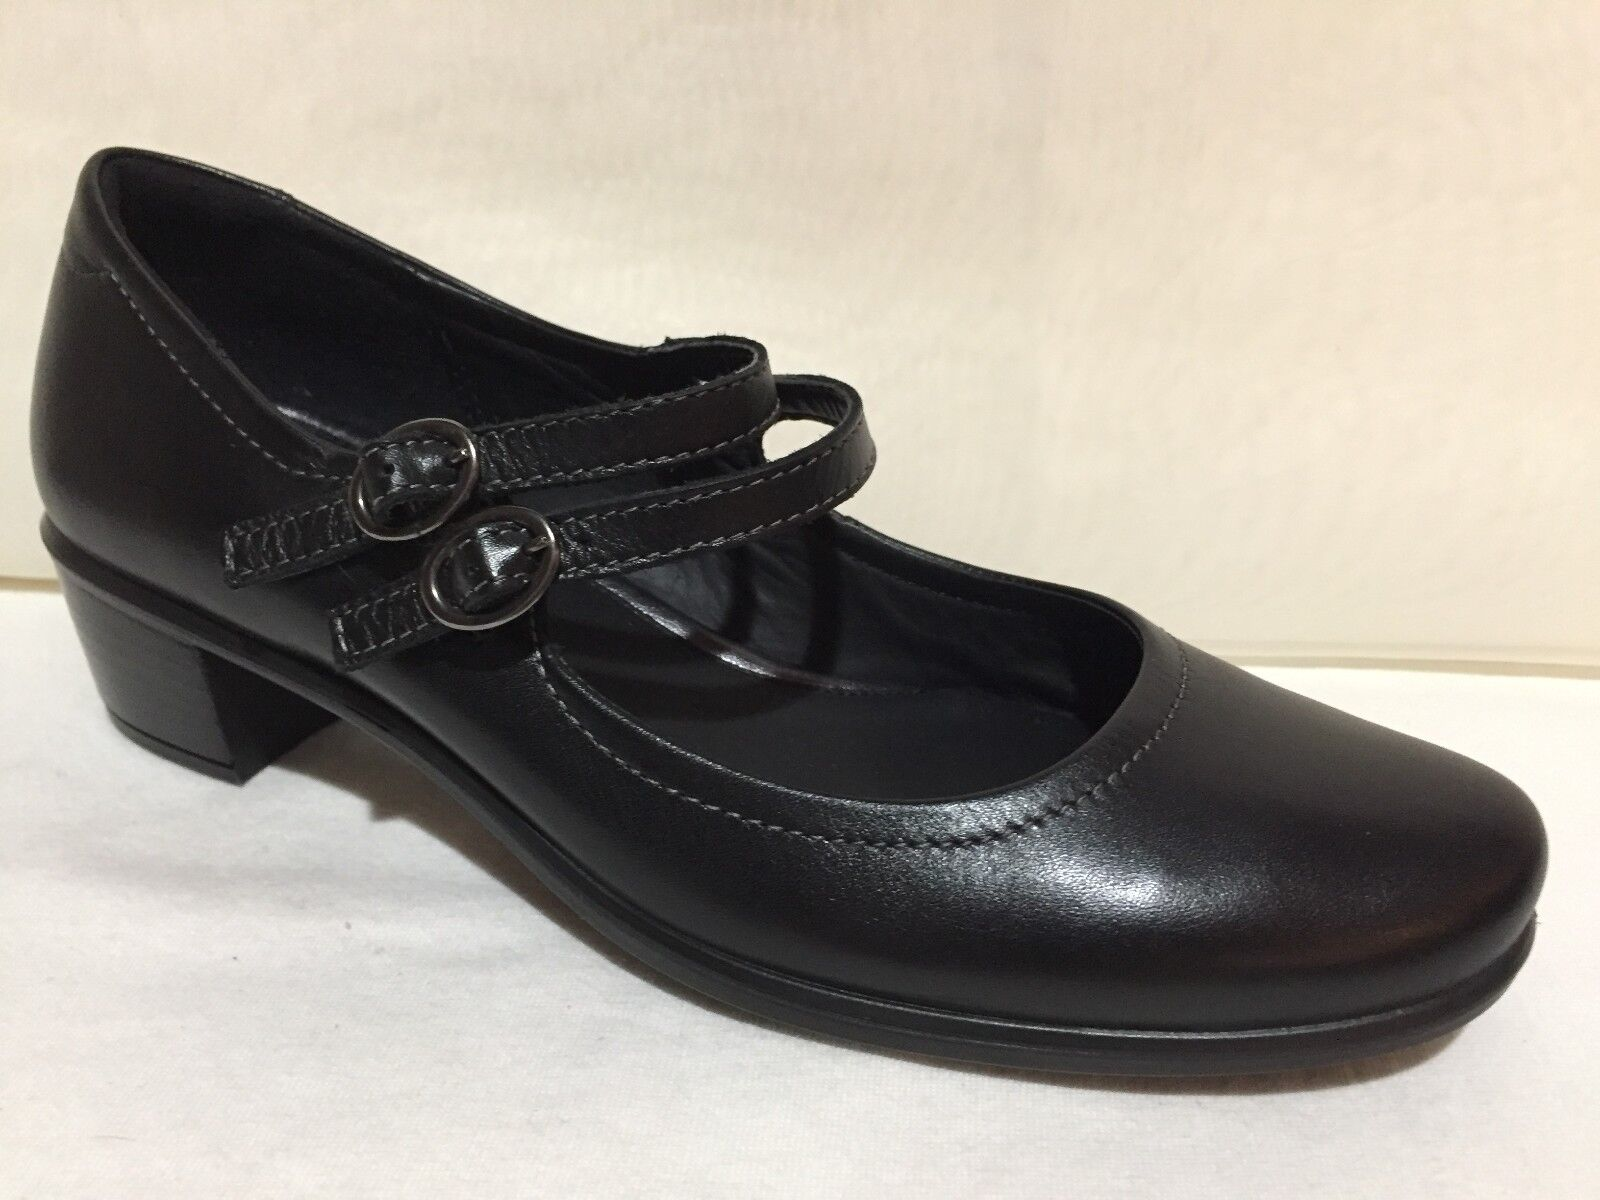 ECCO BLACK LEATHER DOUBLE STRAP MARY JANES HEEL LOAFERS SHOES WOMENS 37 6 - 6.5